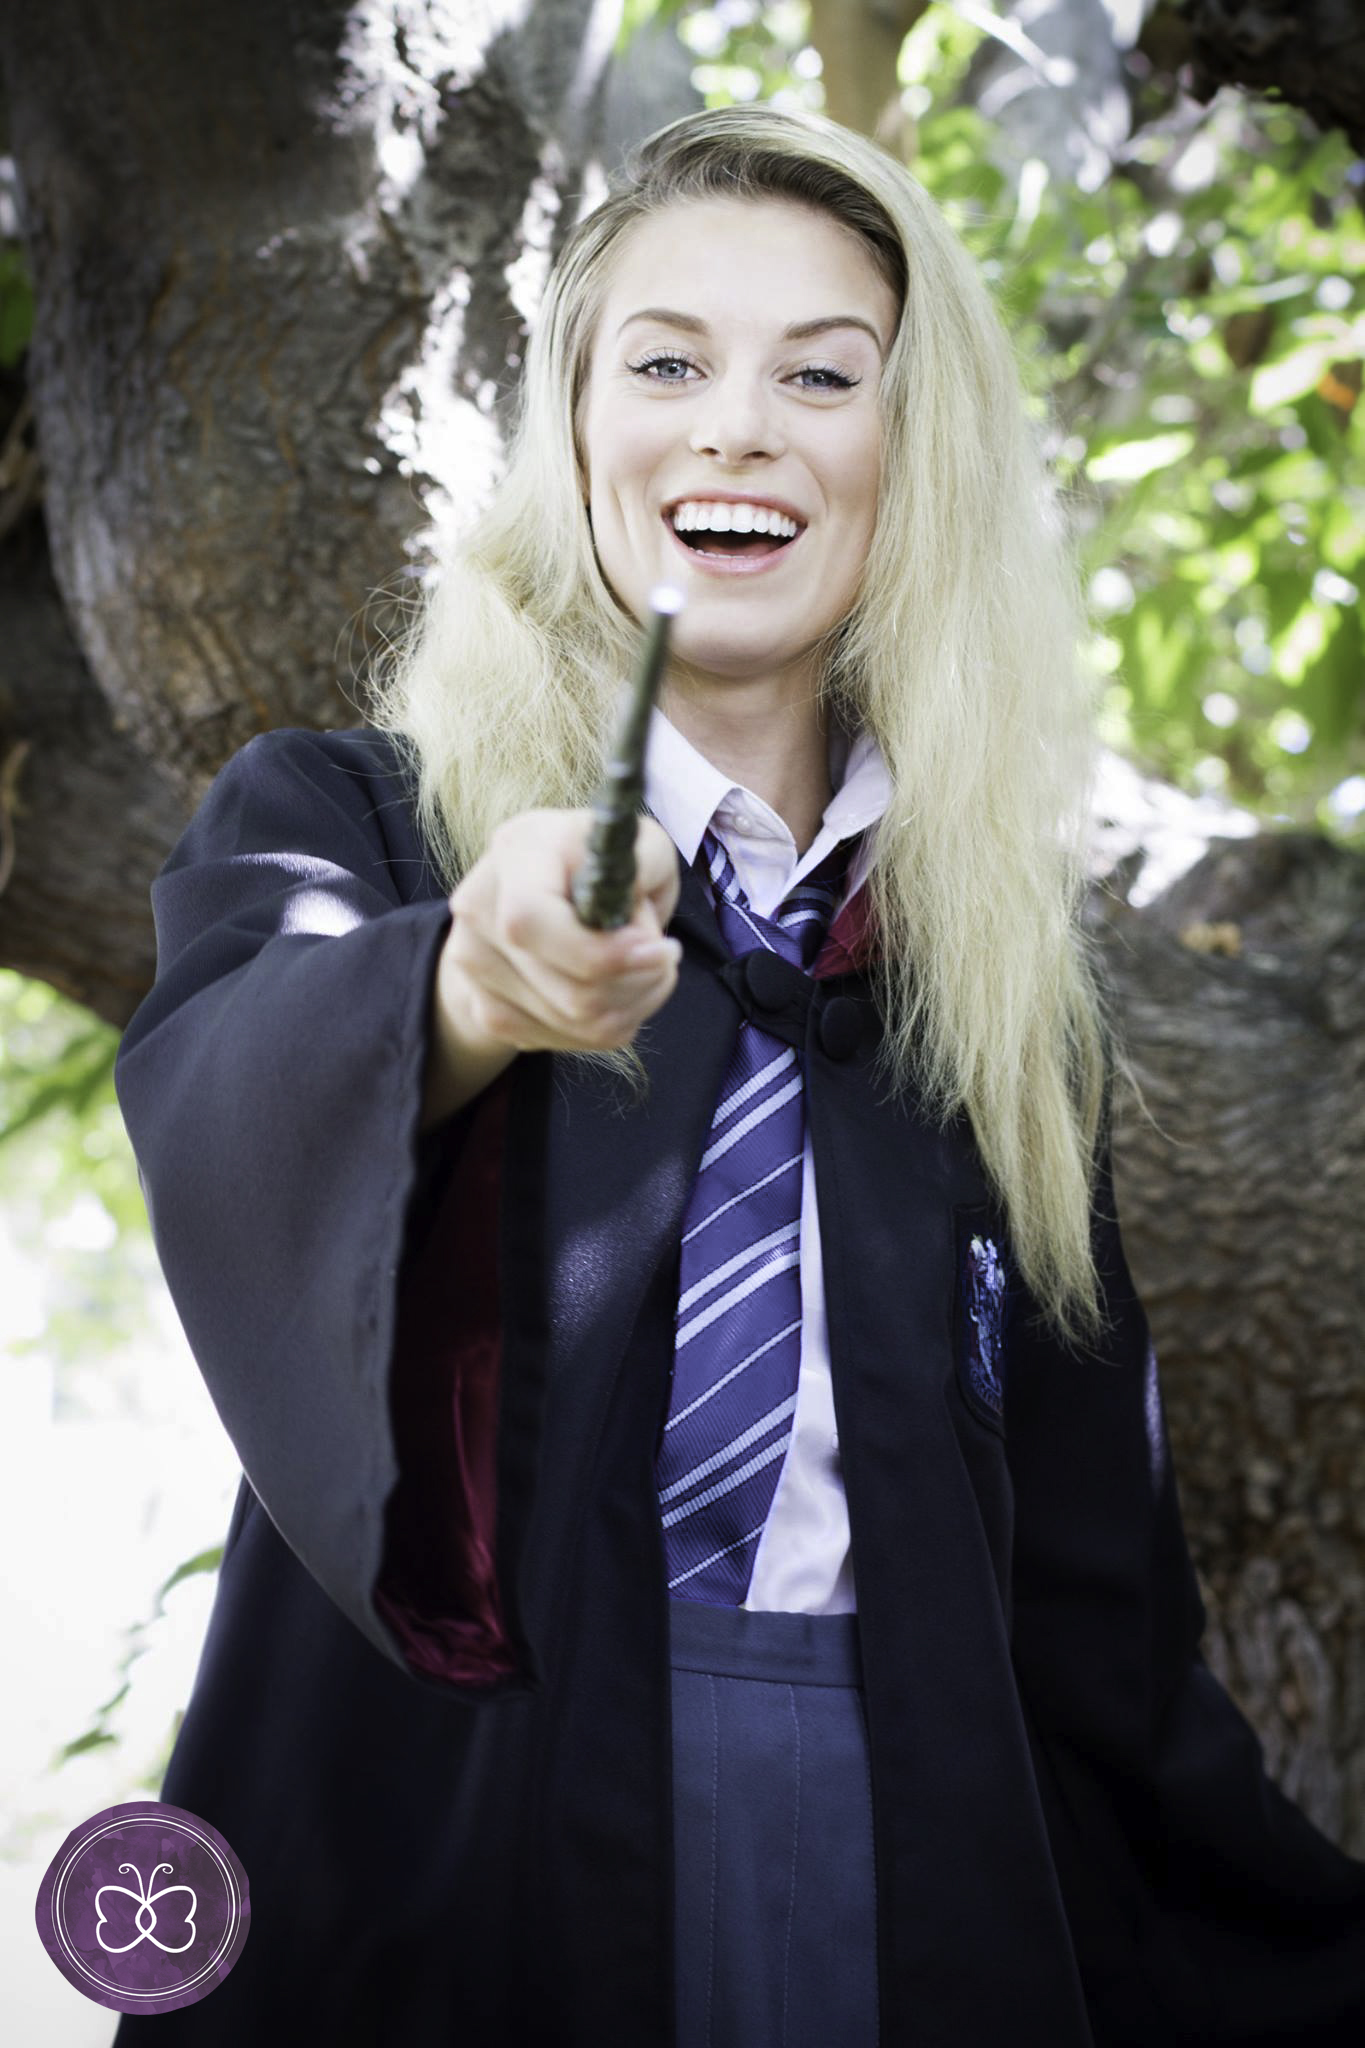 luna lovegood lookalike potter party character los angeles